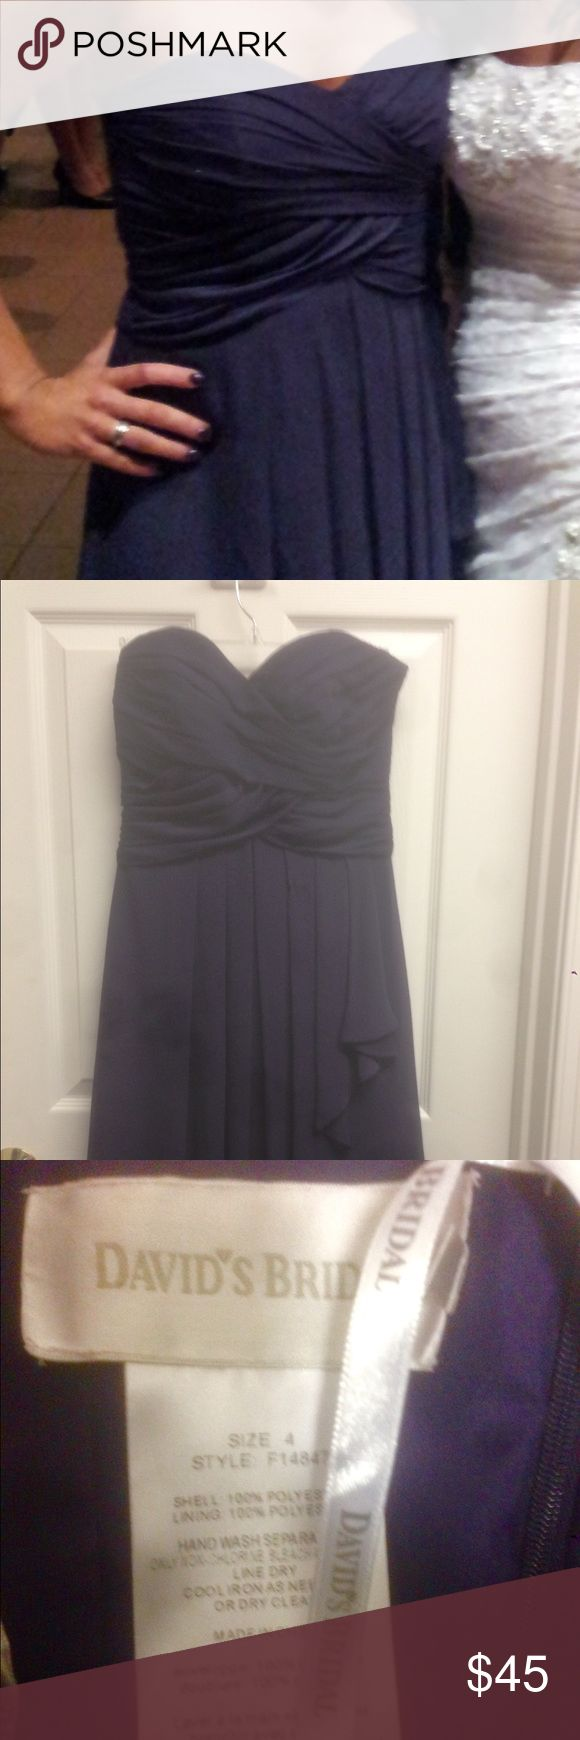 Deep Purple David's Bridal Strapless Dress If you need more pictures please let me know. Beautiful dress, worn once as bridesmaid in wedding, can be worn for many events. David's Bridal Dresses Strapless